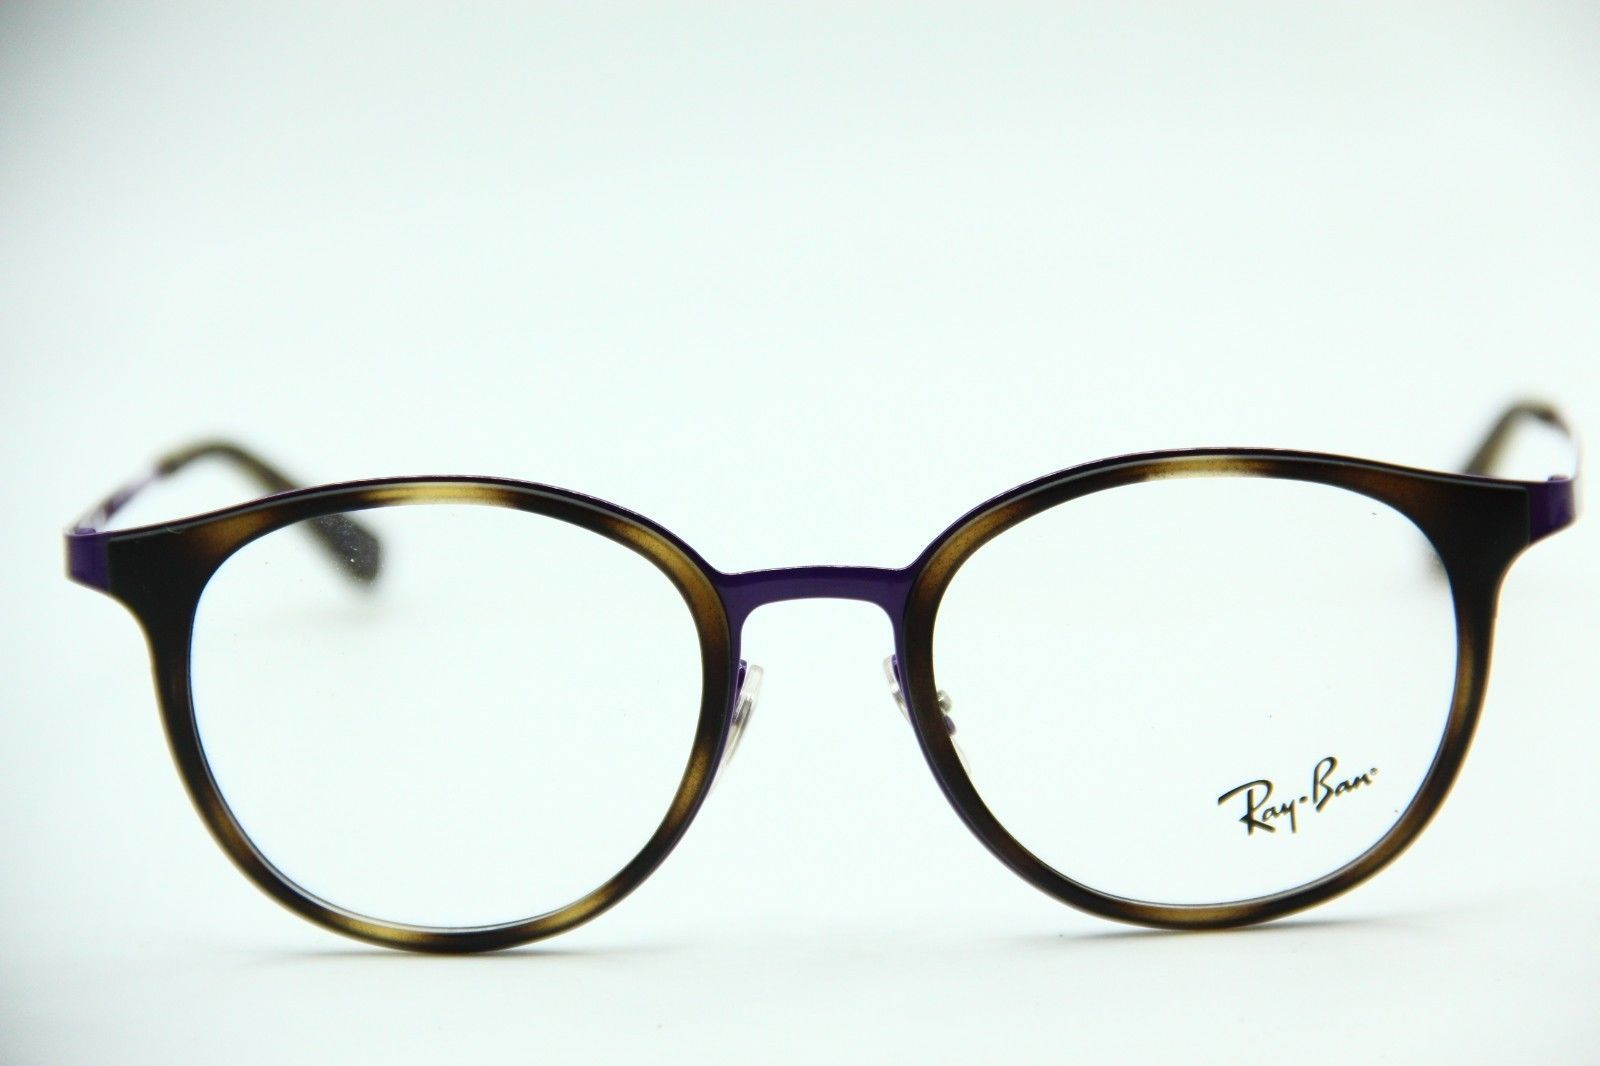 28303faa07c NEW RAY-BAN RB 6372M 2956 TORTOISE EYEGLASSES AUTHENTIC FRAME RX RB6372M  50-19